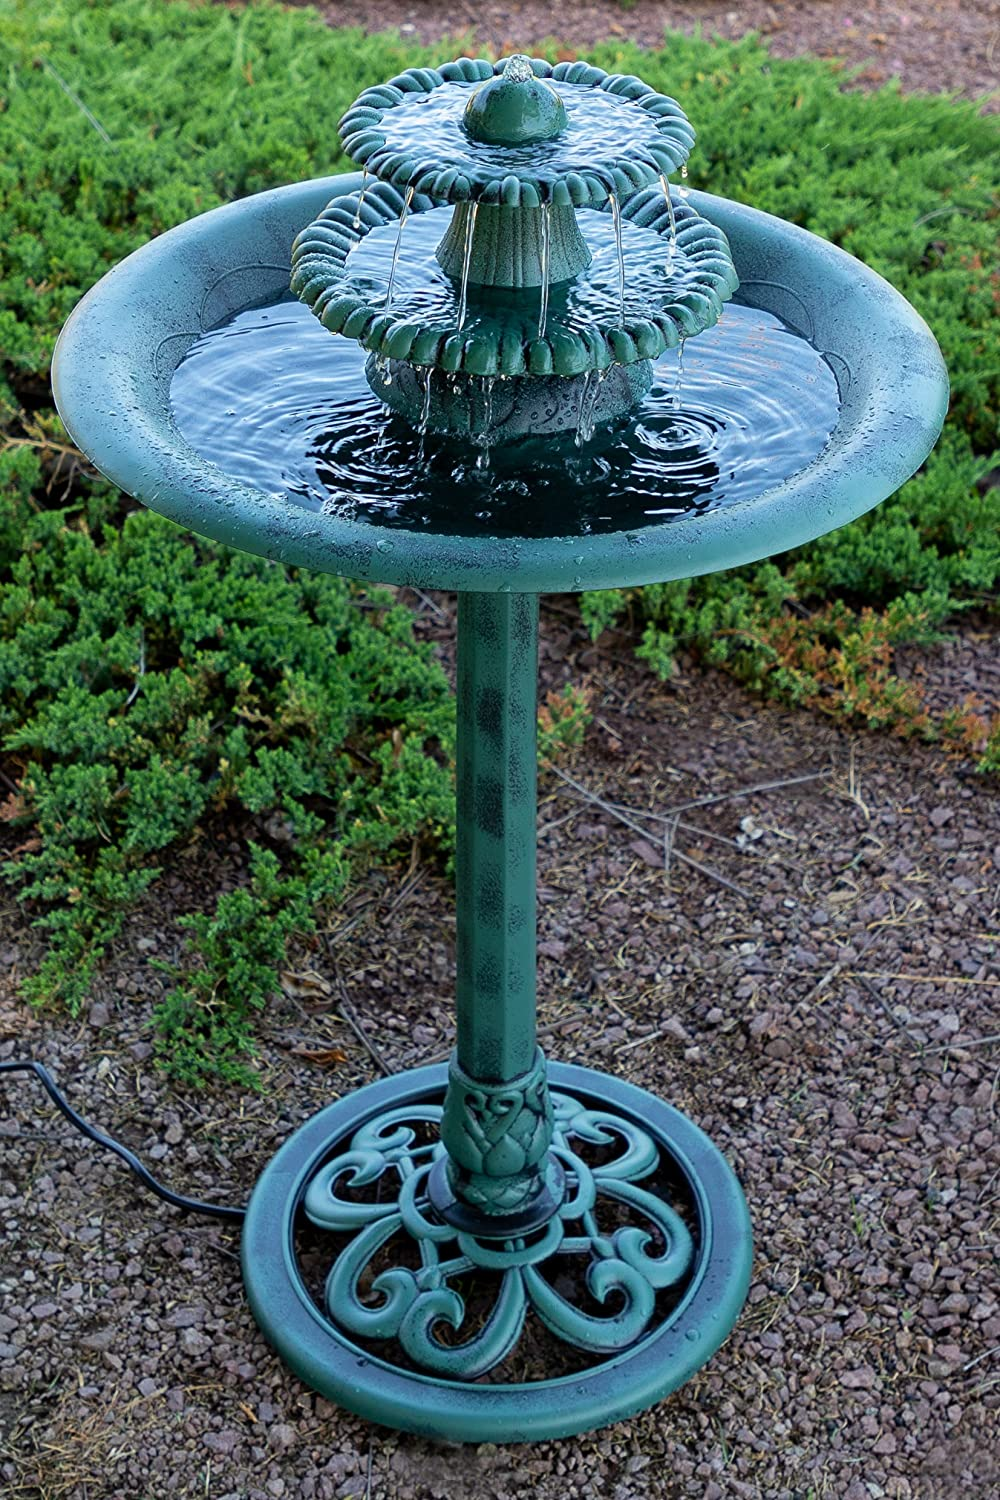 Alpine Tiered Classic Pedestal Garden Water Fountain and Birdbath, Dark Verdigris Green Finish, 35 Inch Tall TEC106